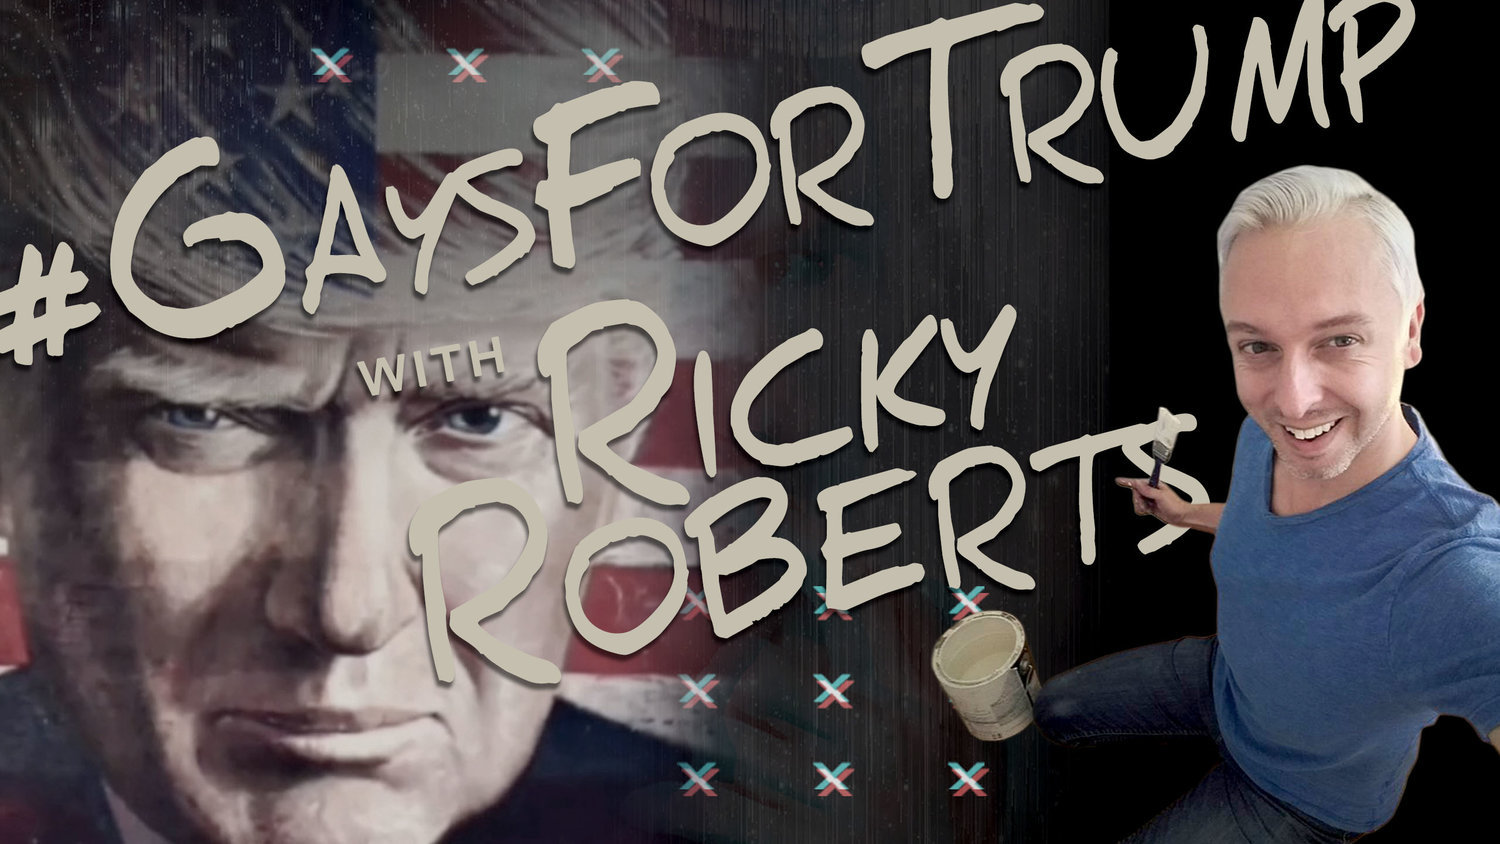 114: Gays for Trump with Ricky Roberts!